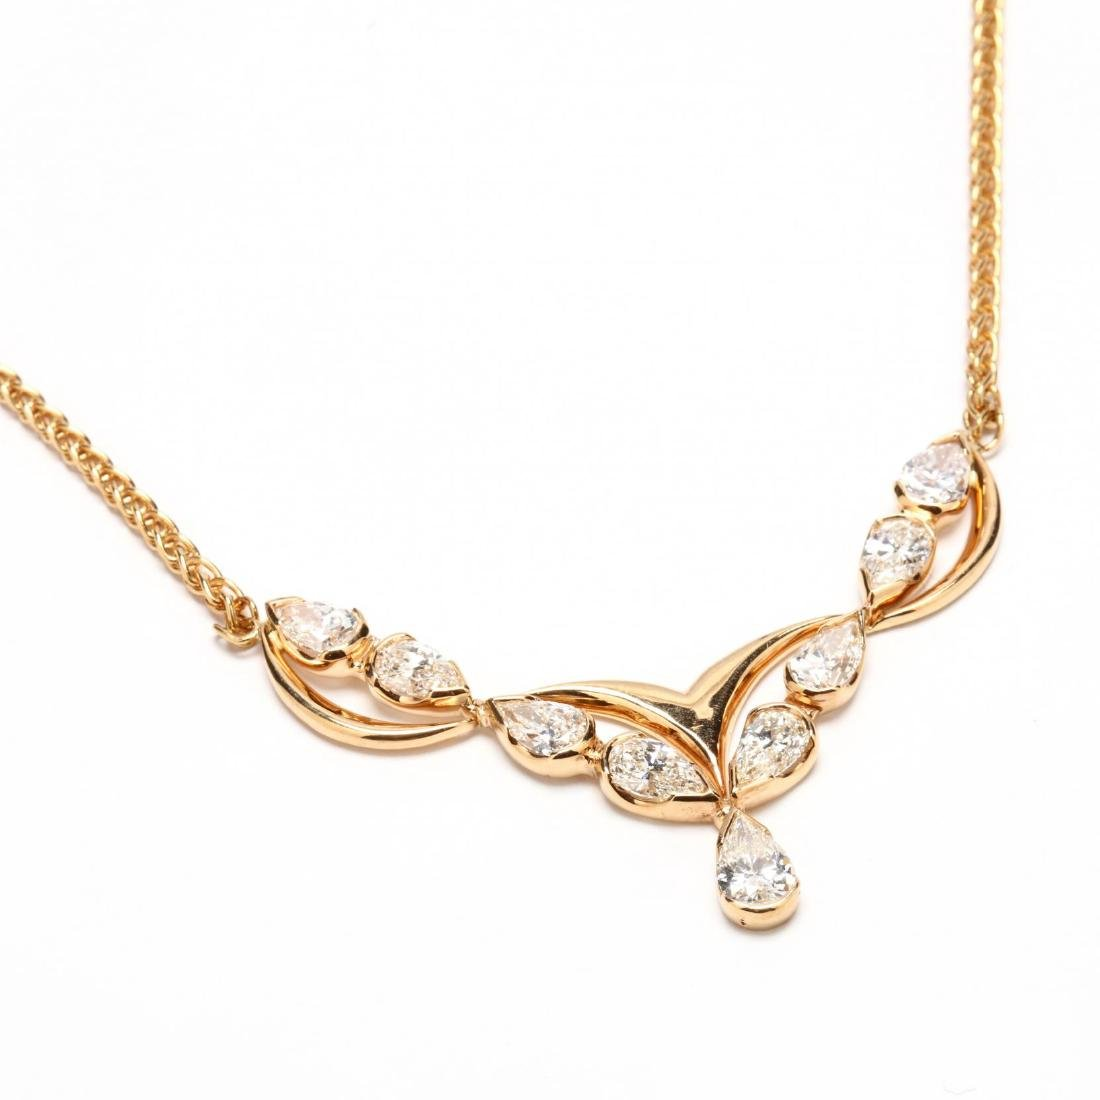 18KT Gold and Diamond Necklace, Italy